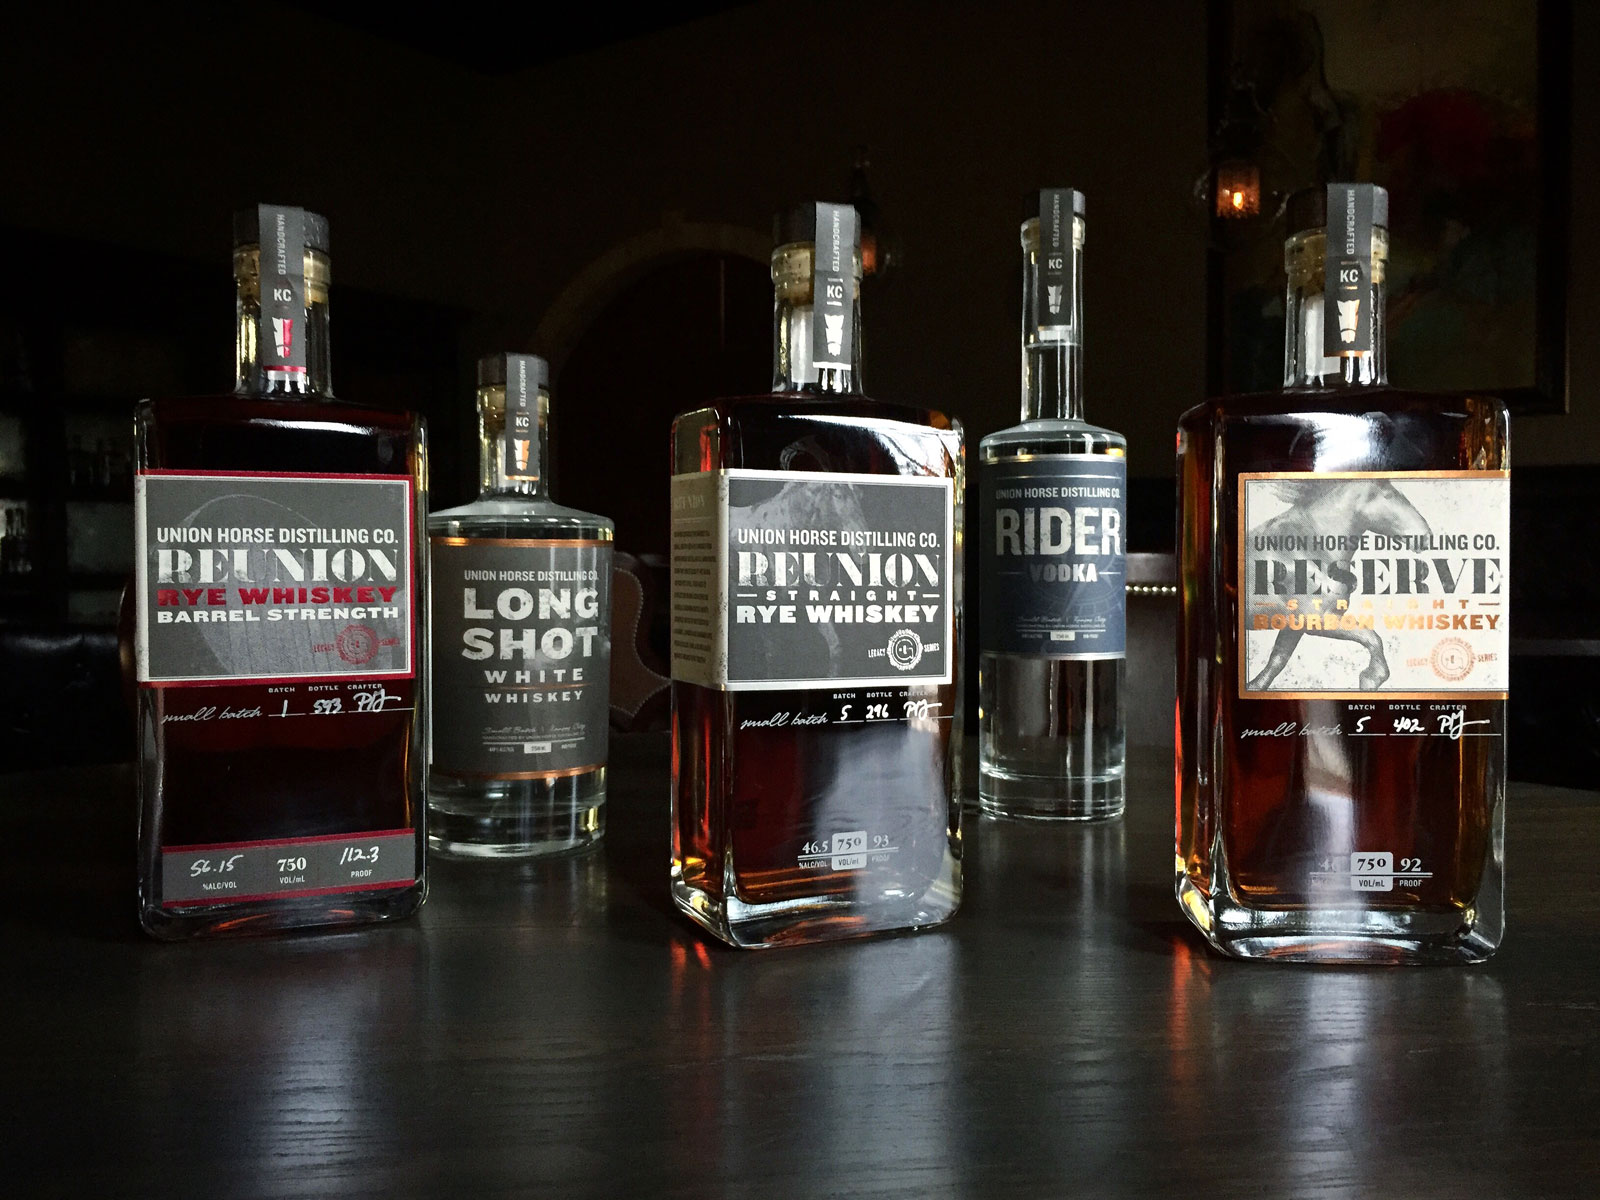 Union Horse Distilling Company